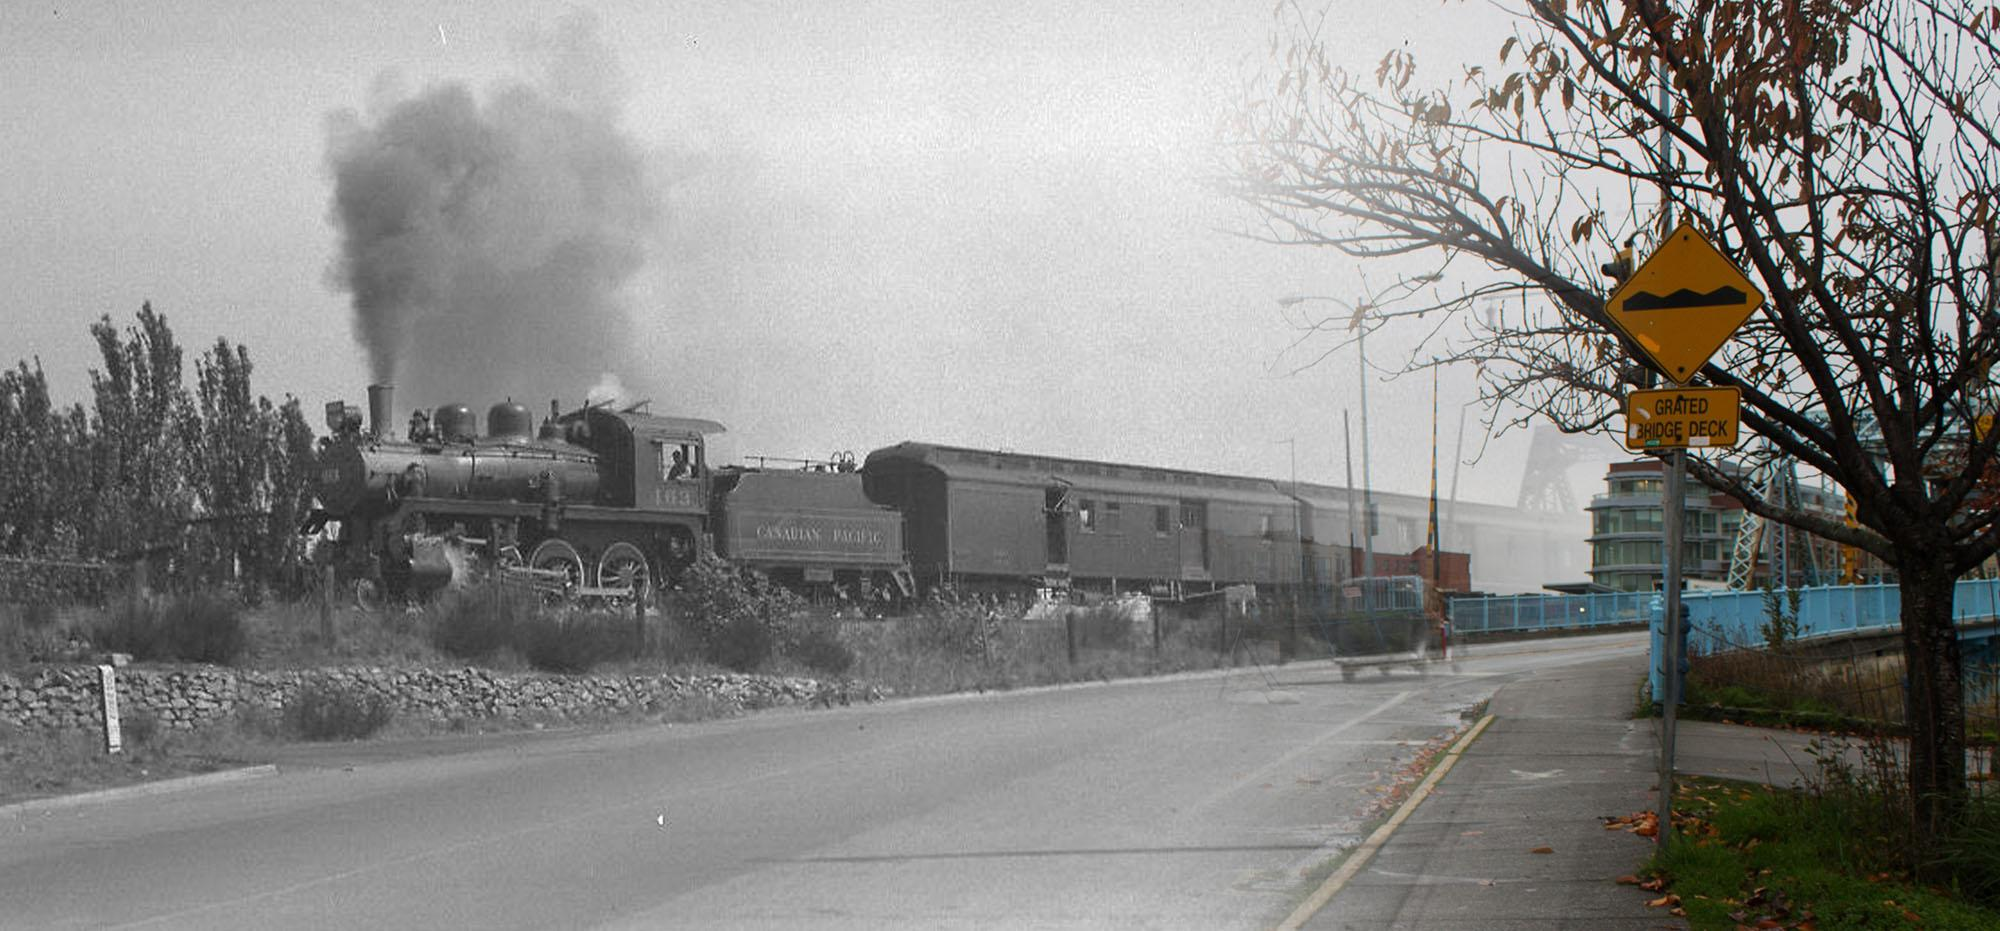 A Canadian Pacific Railway train in the 1940s (Vancouver Archives/On This Spot)